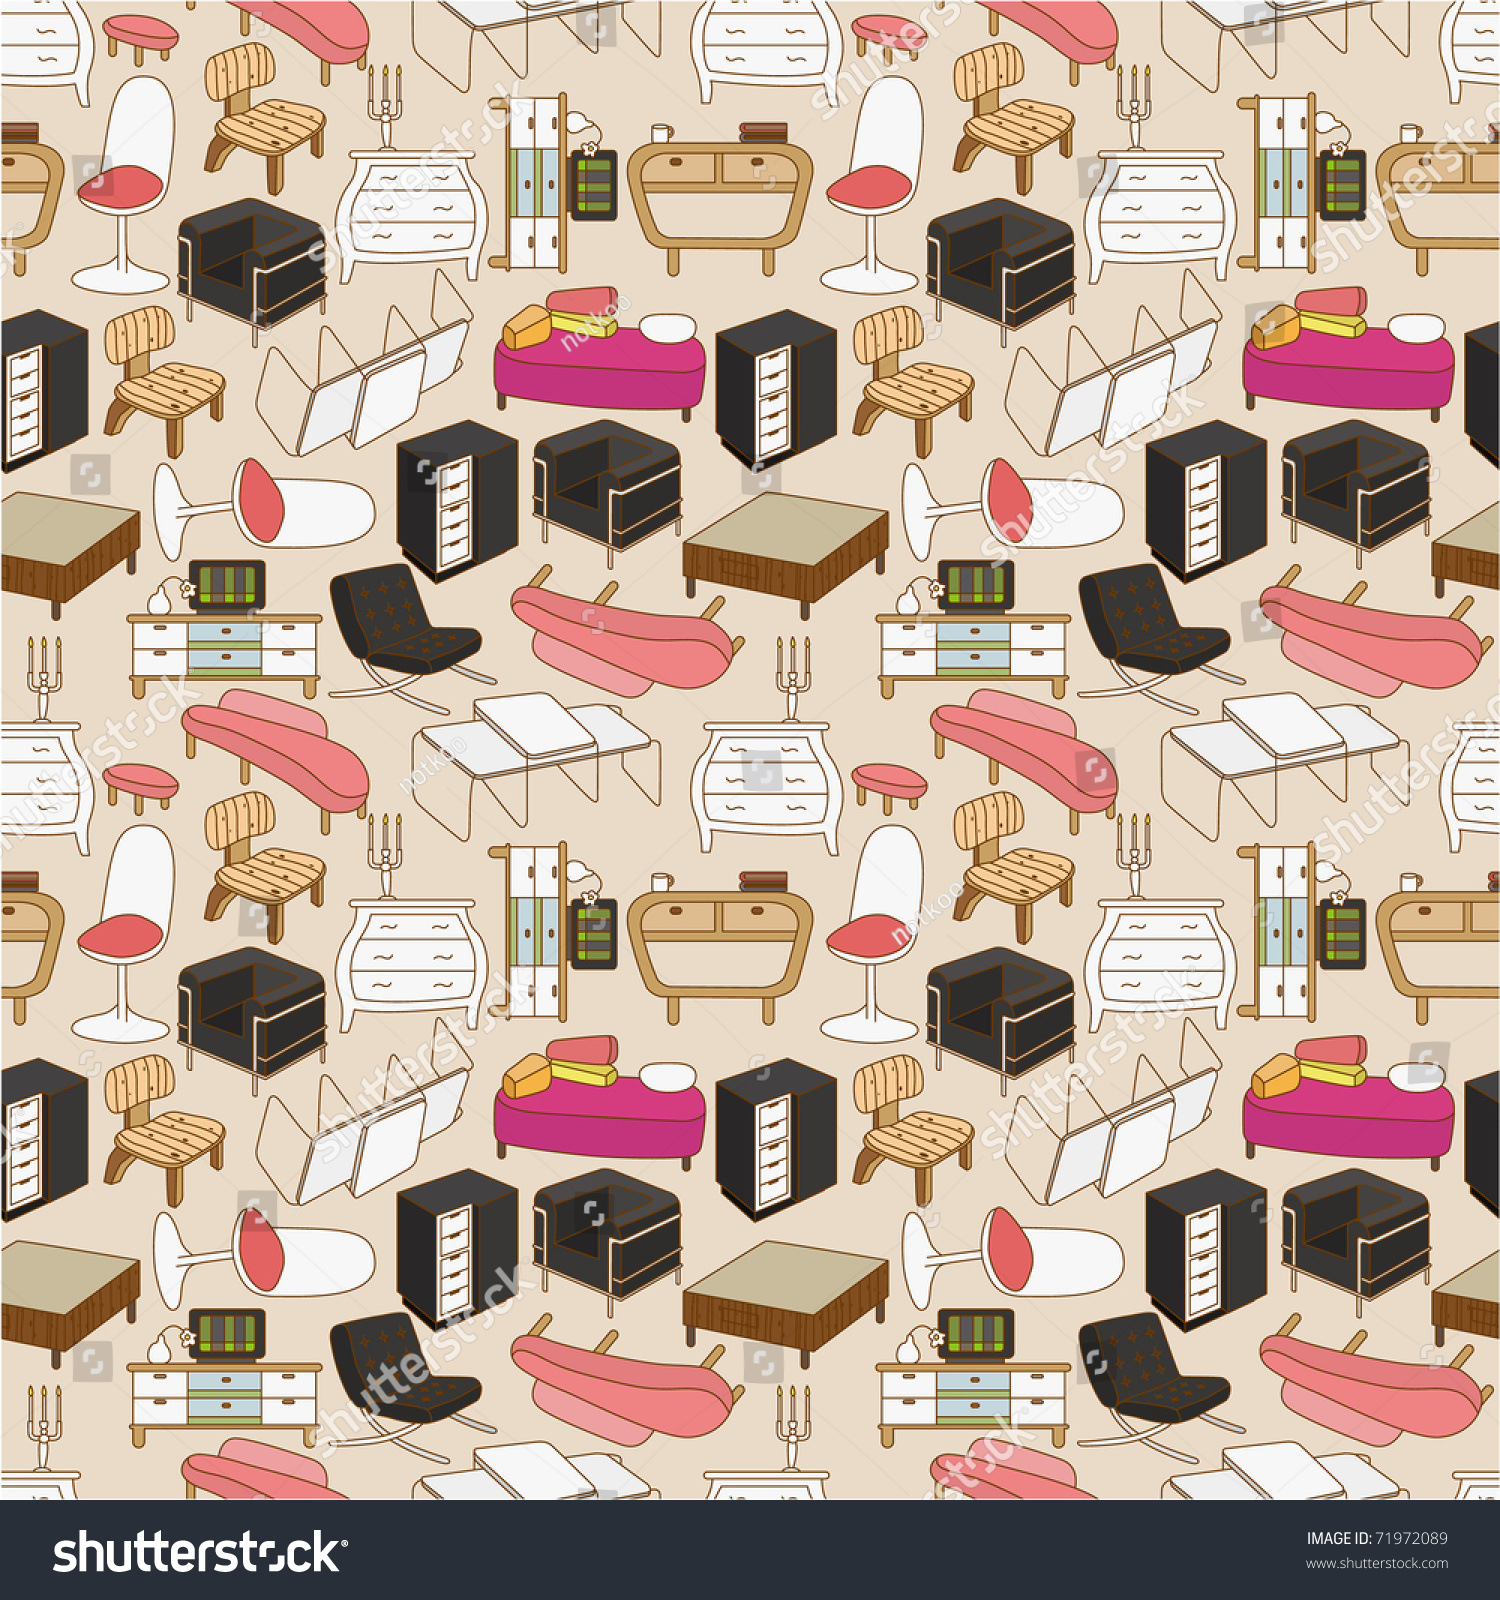 Bedroom Colour Images Bedroom Chairs And Stools Sensual Bedroom Art Bedroom Furniture Cartoon: Seamless Furniture Pattern Stock Vector 71972089